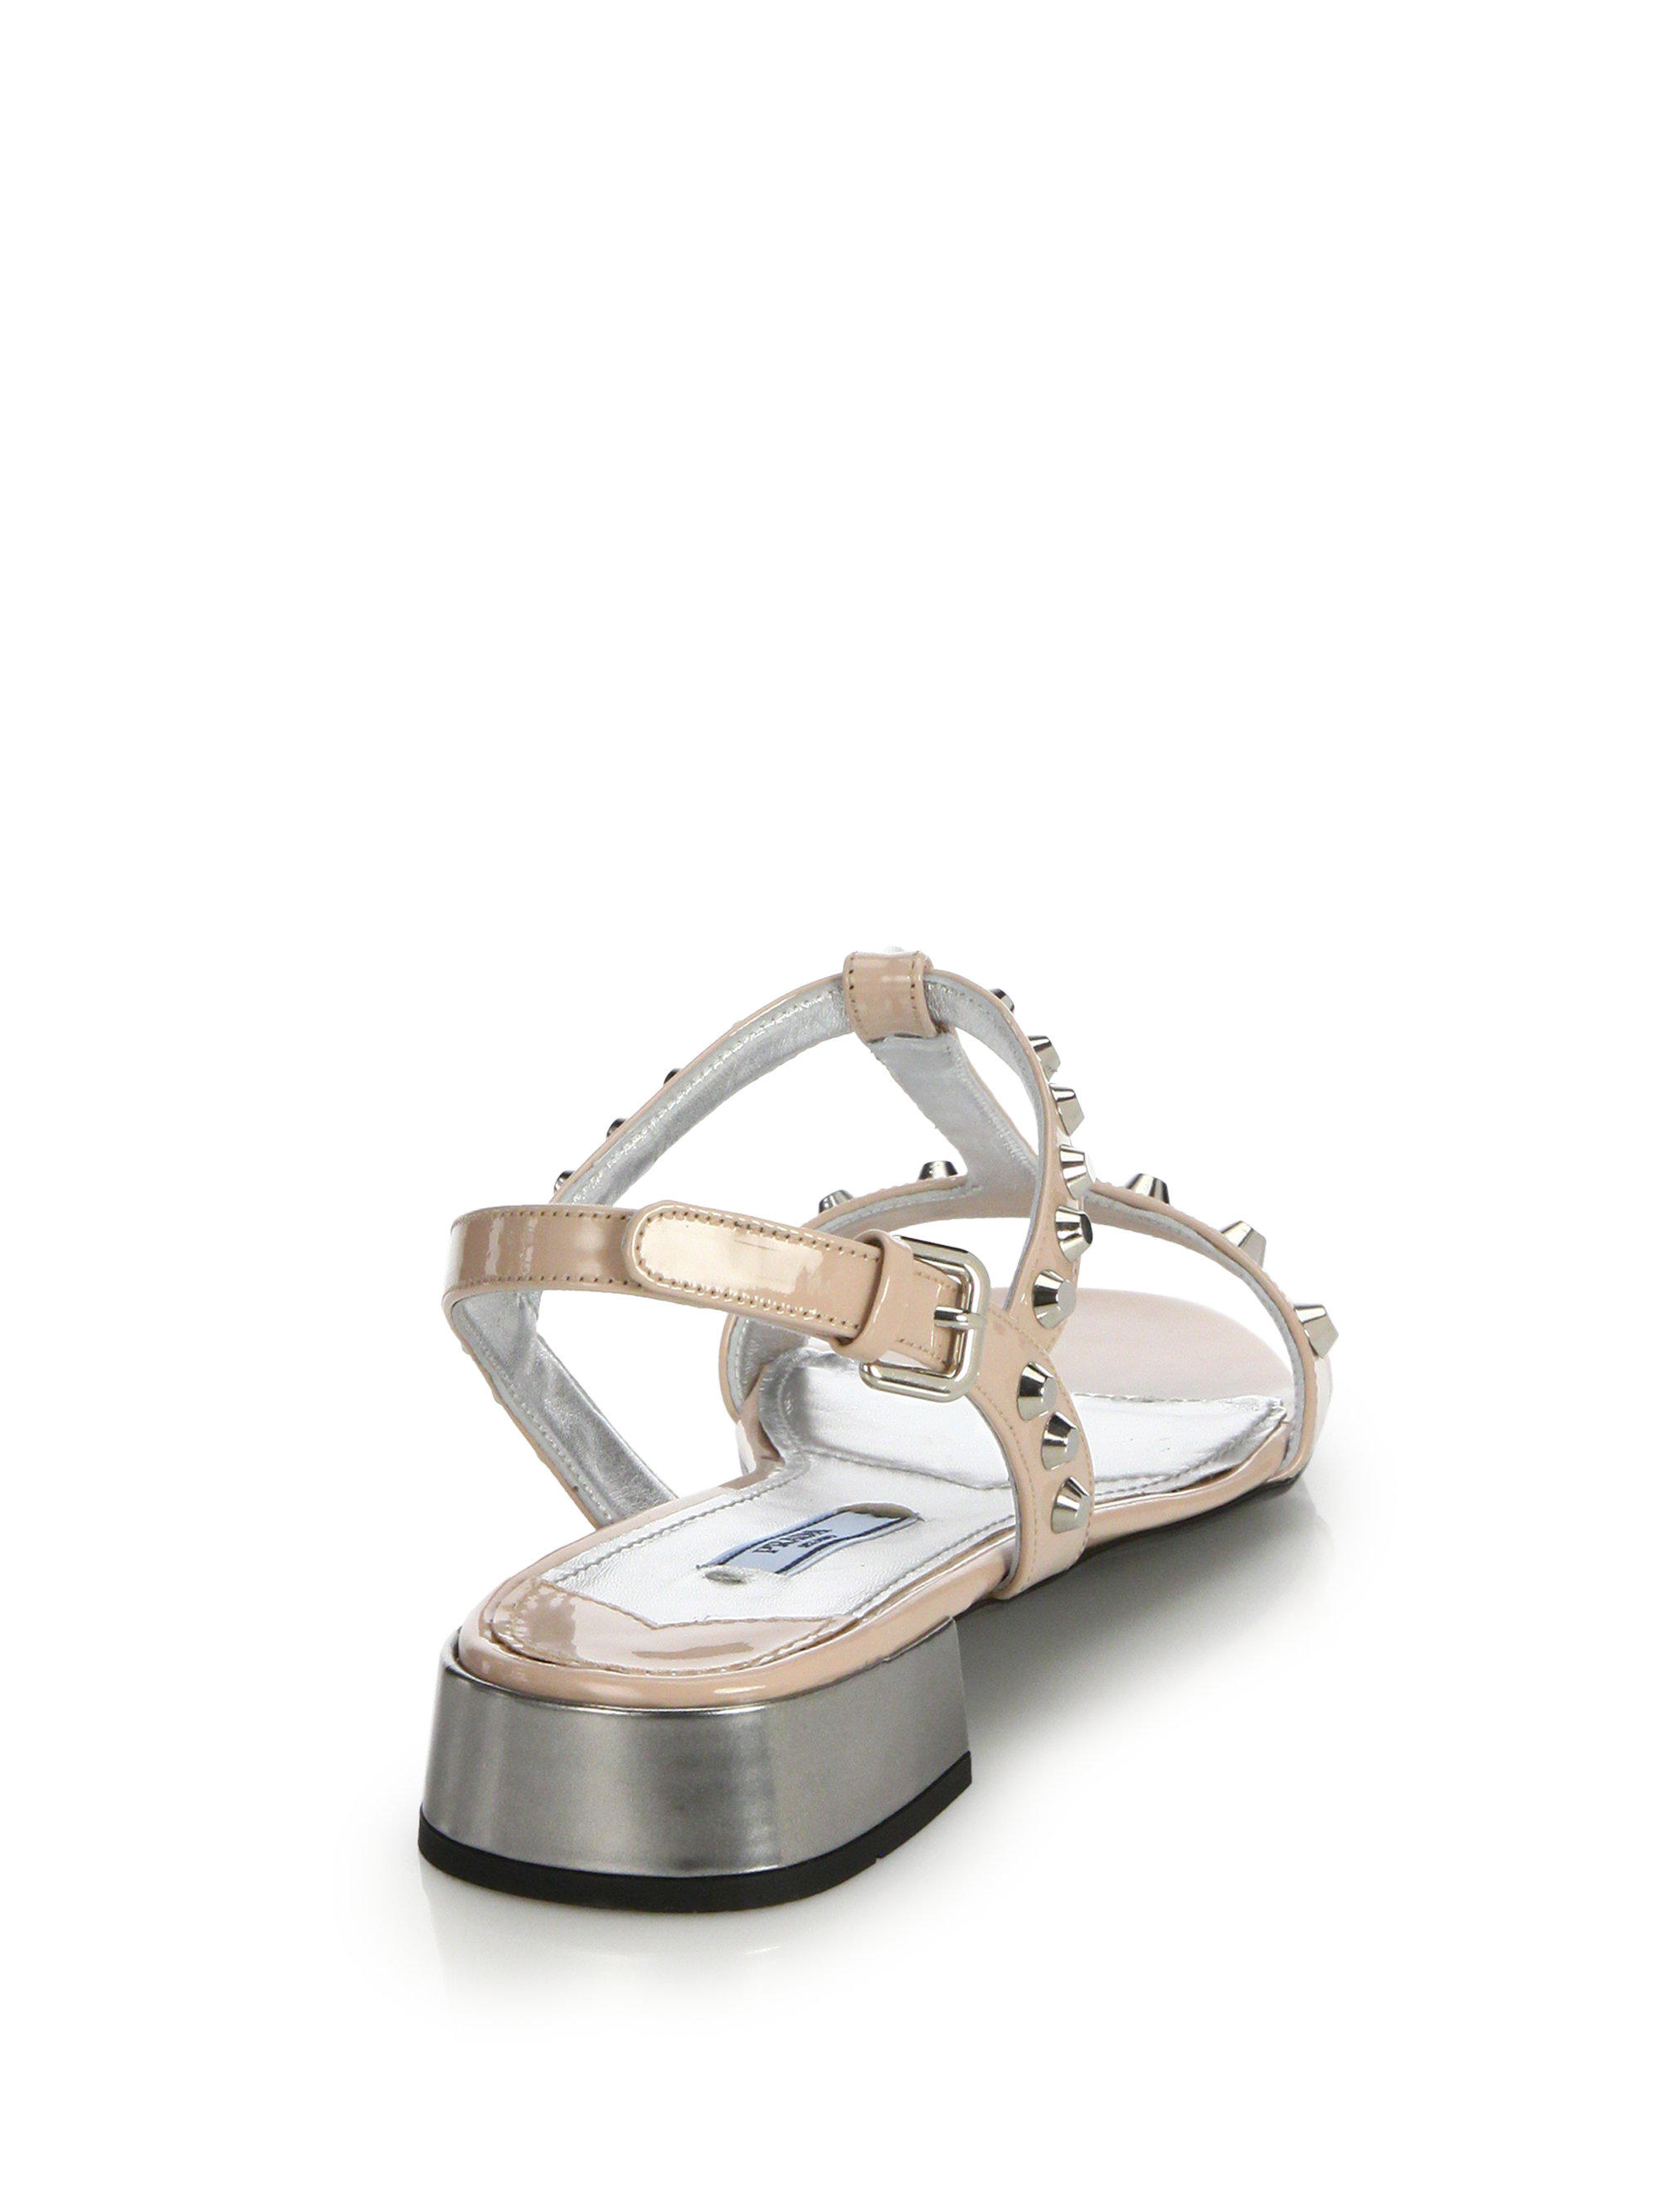 prada bags shop online - Prada Studded Patent Leather Sandals in Pink (blush) | Lyst